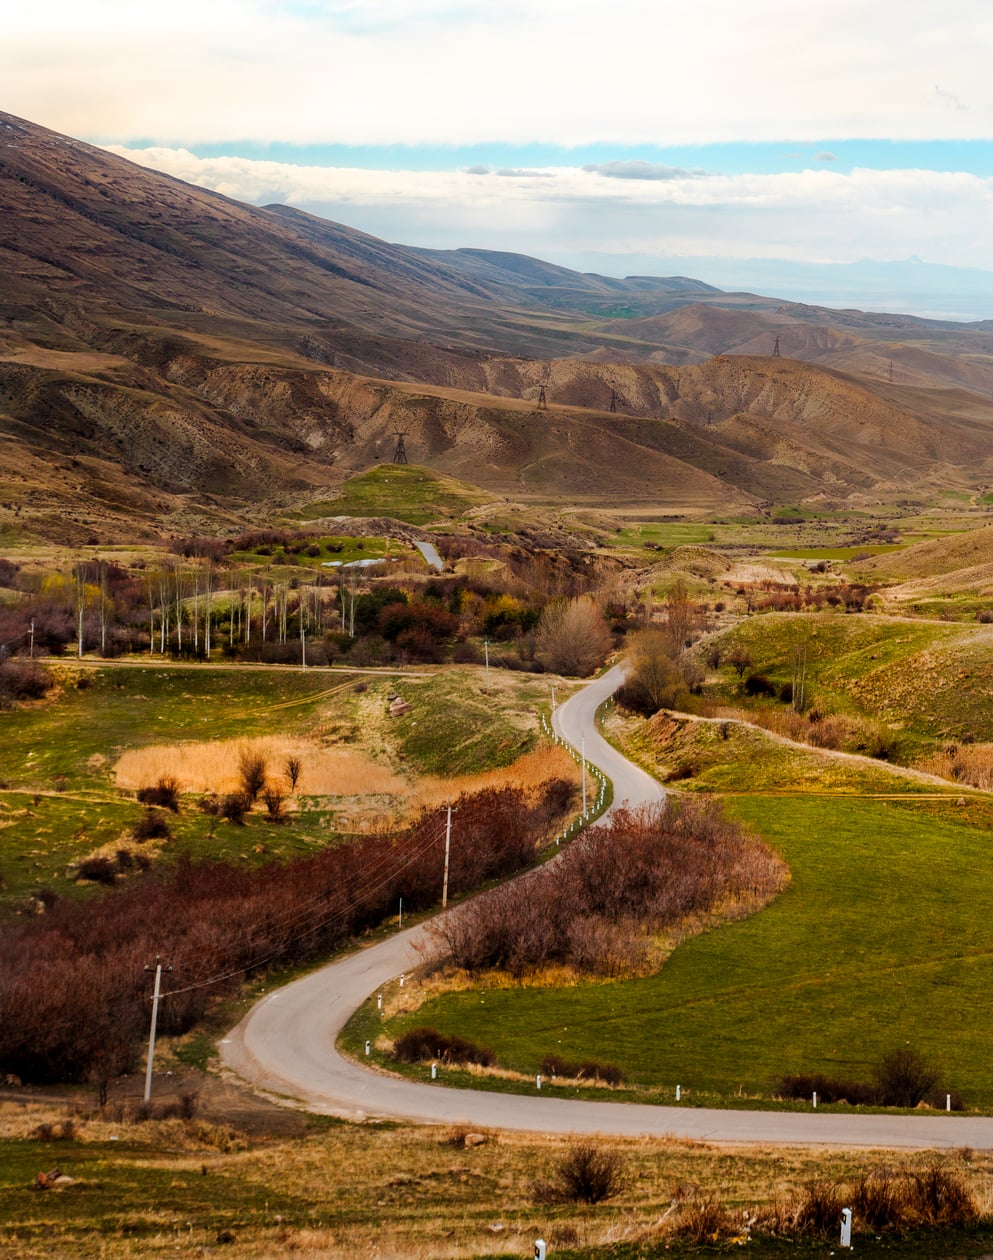 Armenia Photography that will Inspire you to want to Visit